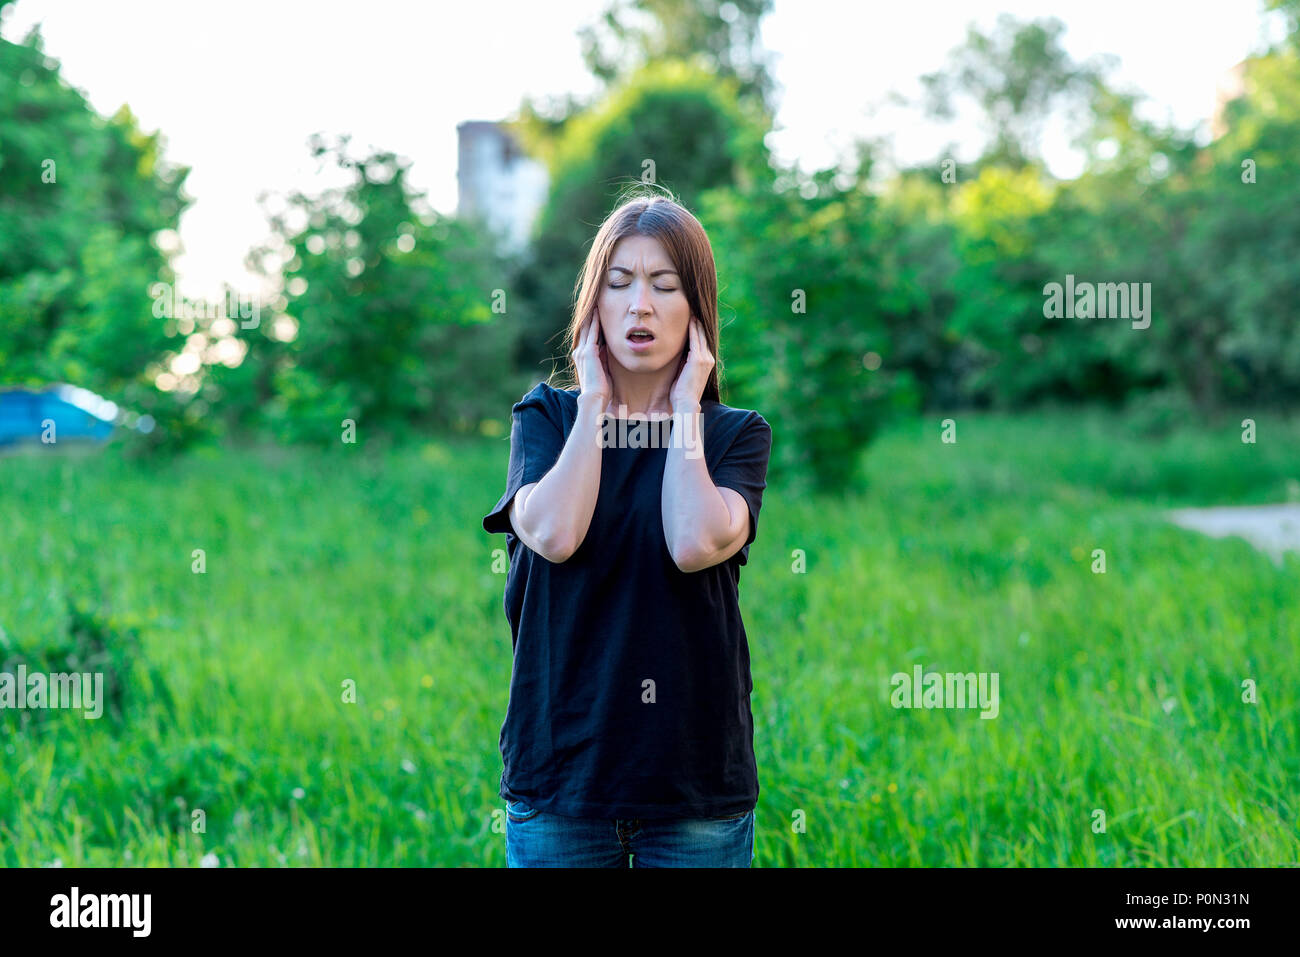 Girl in summer in a park in nature. Emotionally keeps his ears from loud sound. Squeezed her eyes open. Emotionally dissatisfaction with noise. Casual wear. - Stock Image